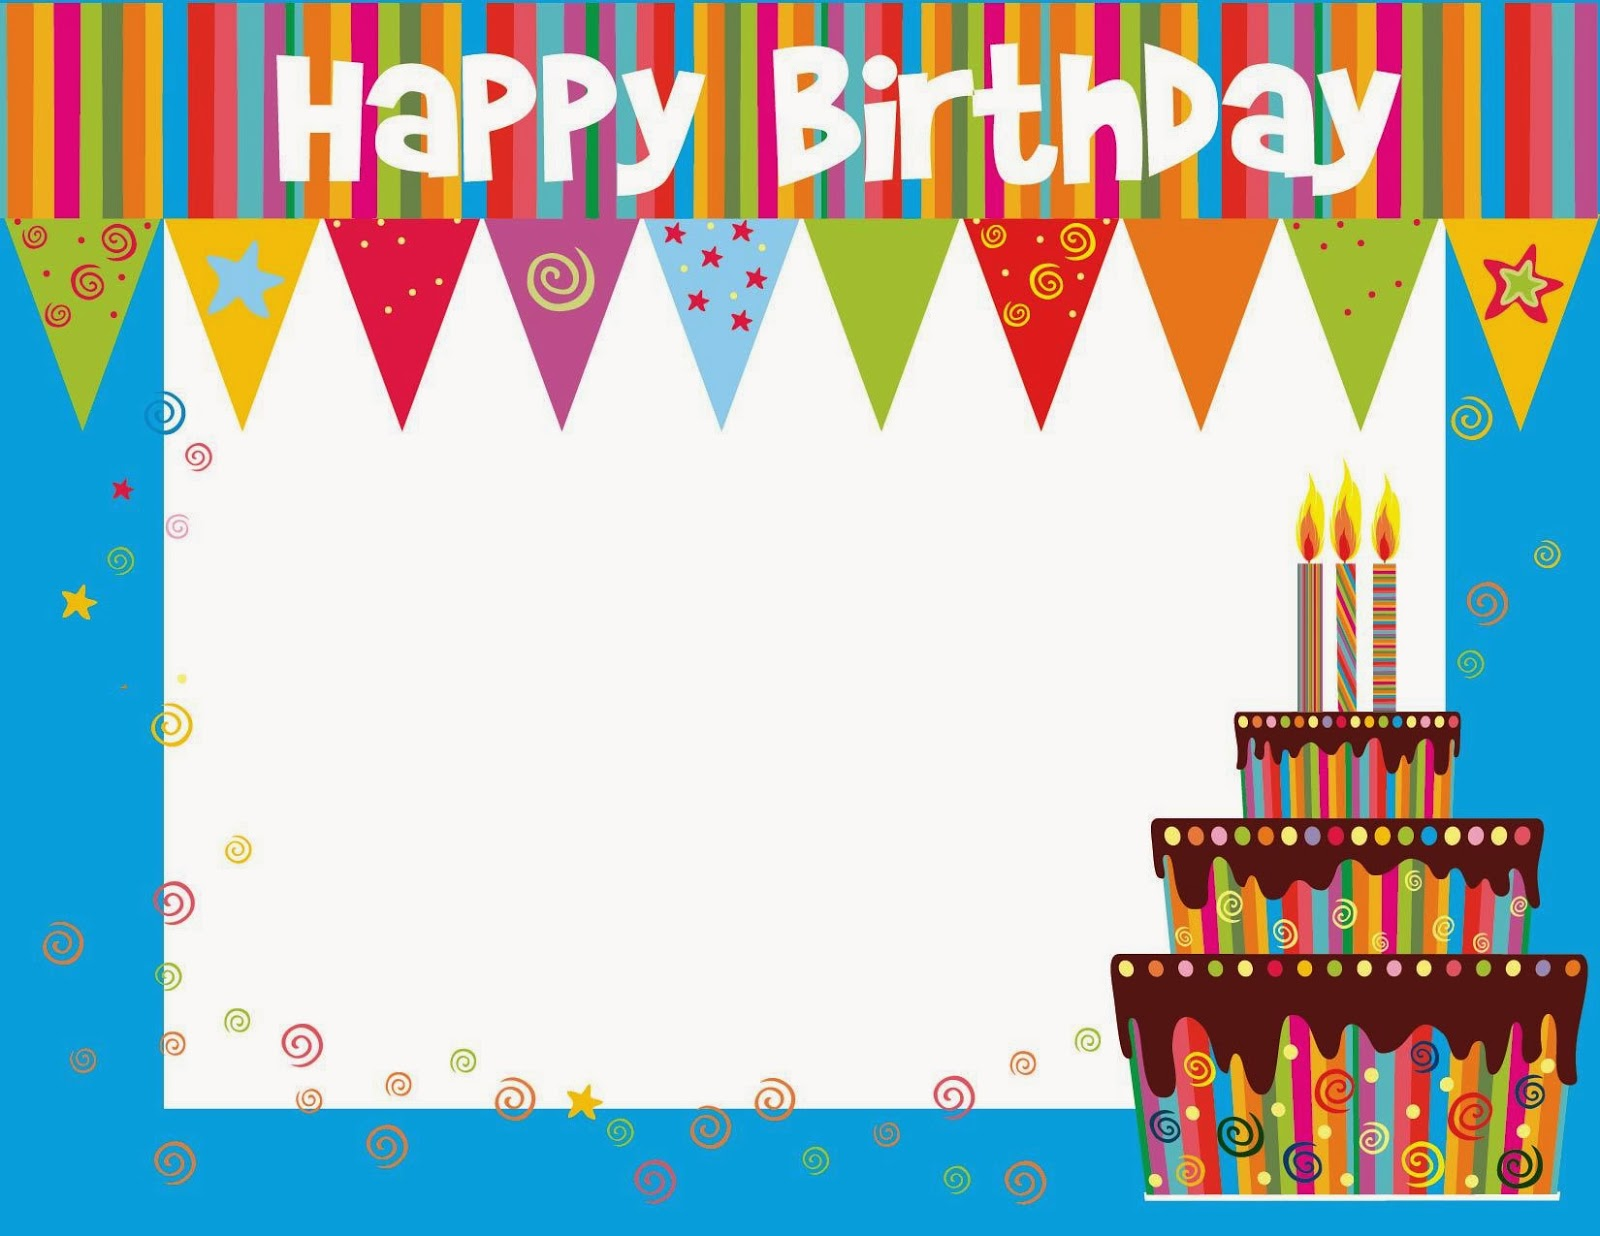 Happy Birthday wishes images and messages Google – Birthday Cards Print out